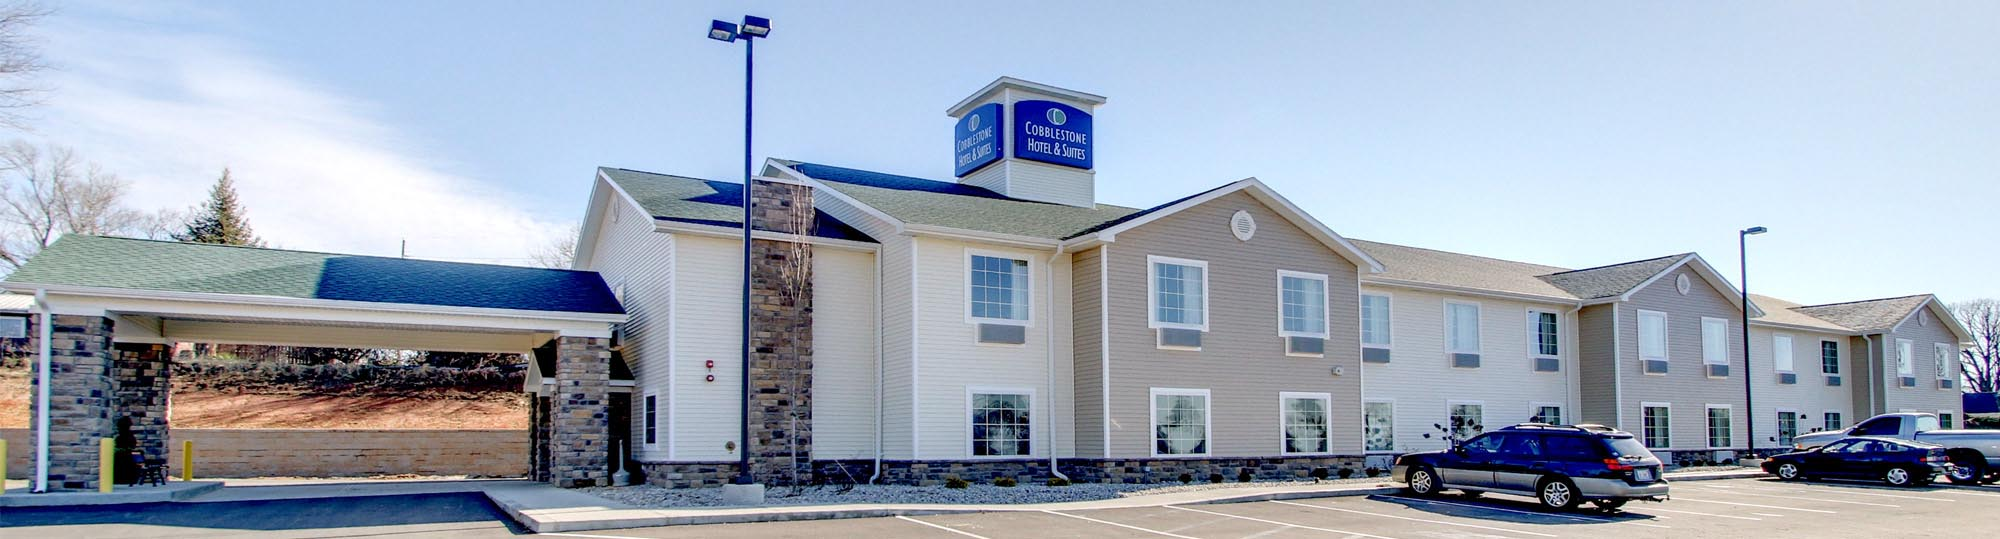 Cobblestone Hotel and Suites in Salem, Indiana - Hotel